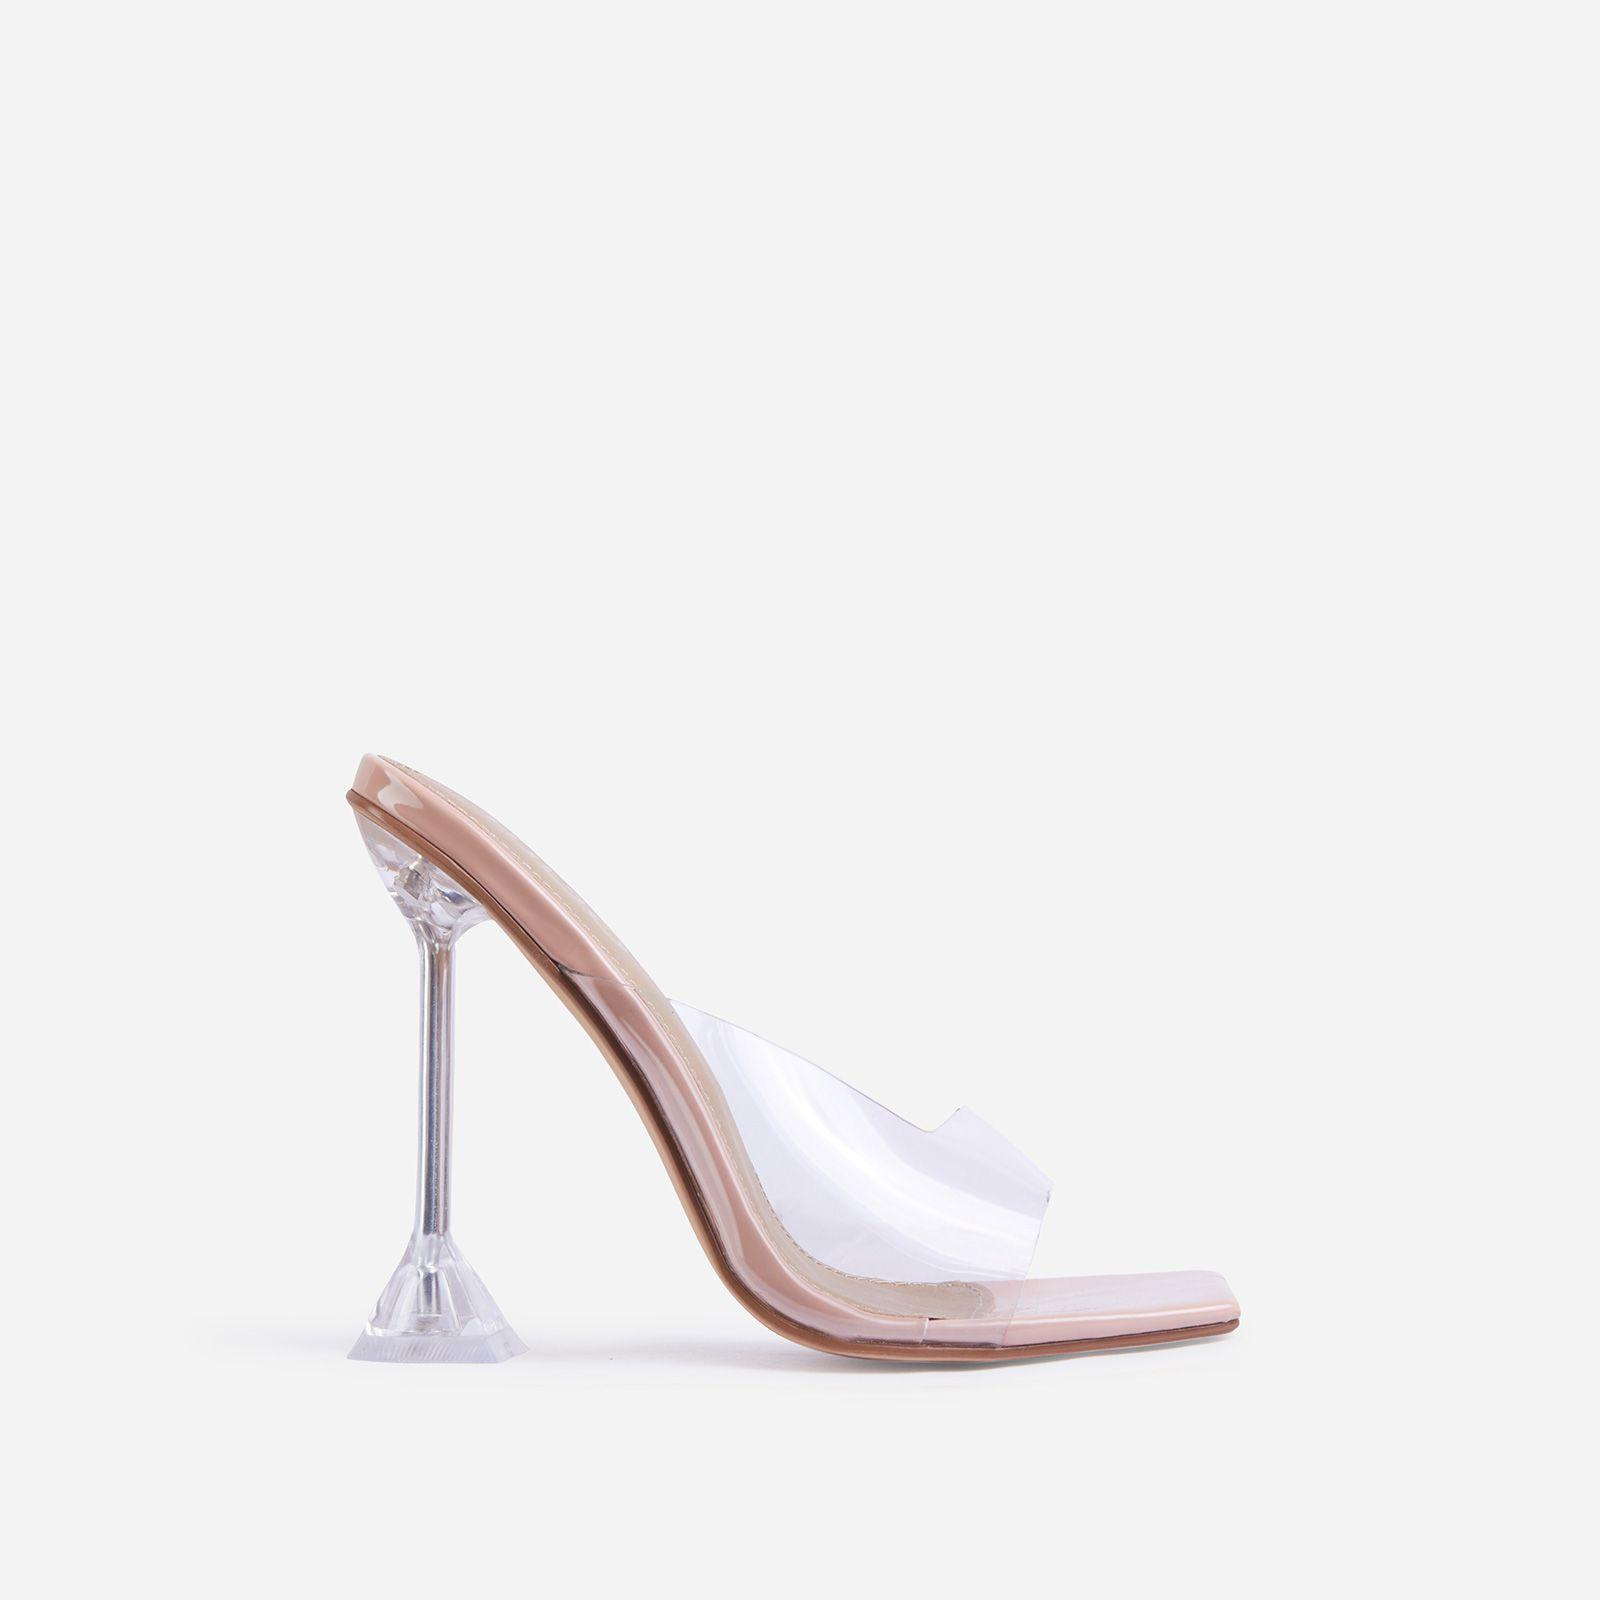 Tickled Square Peep Toe Clear Perspex